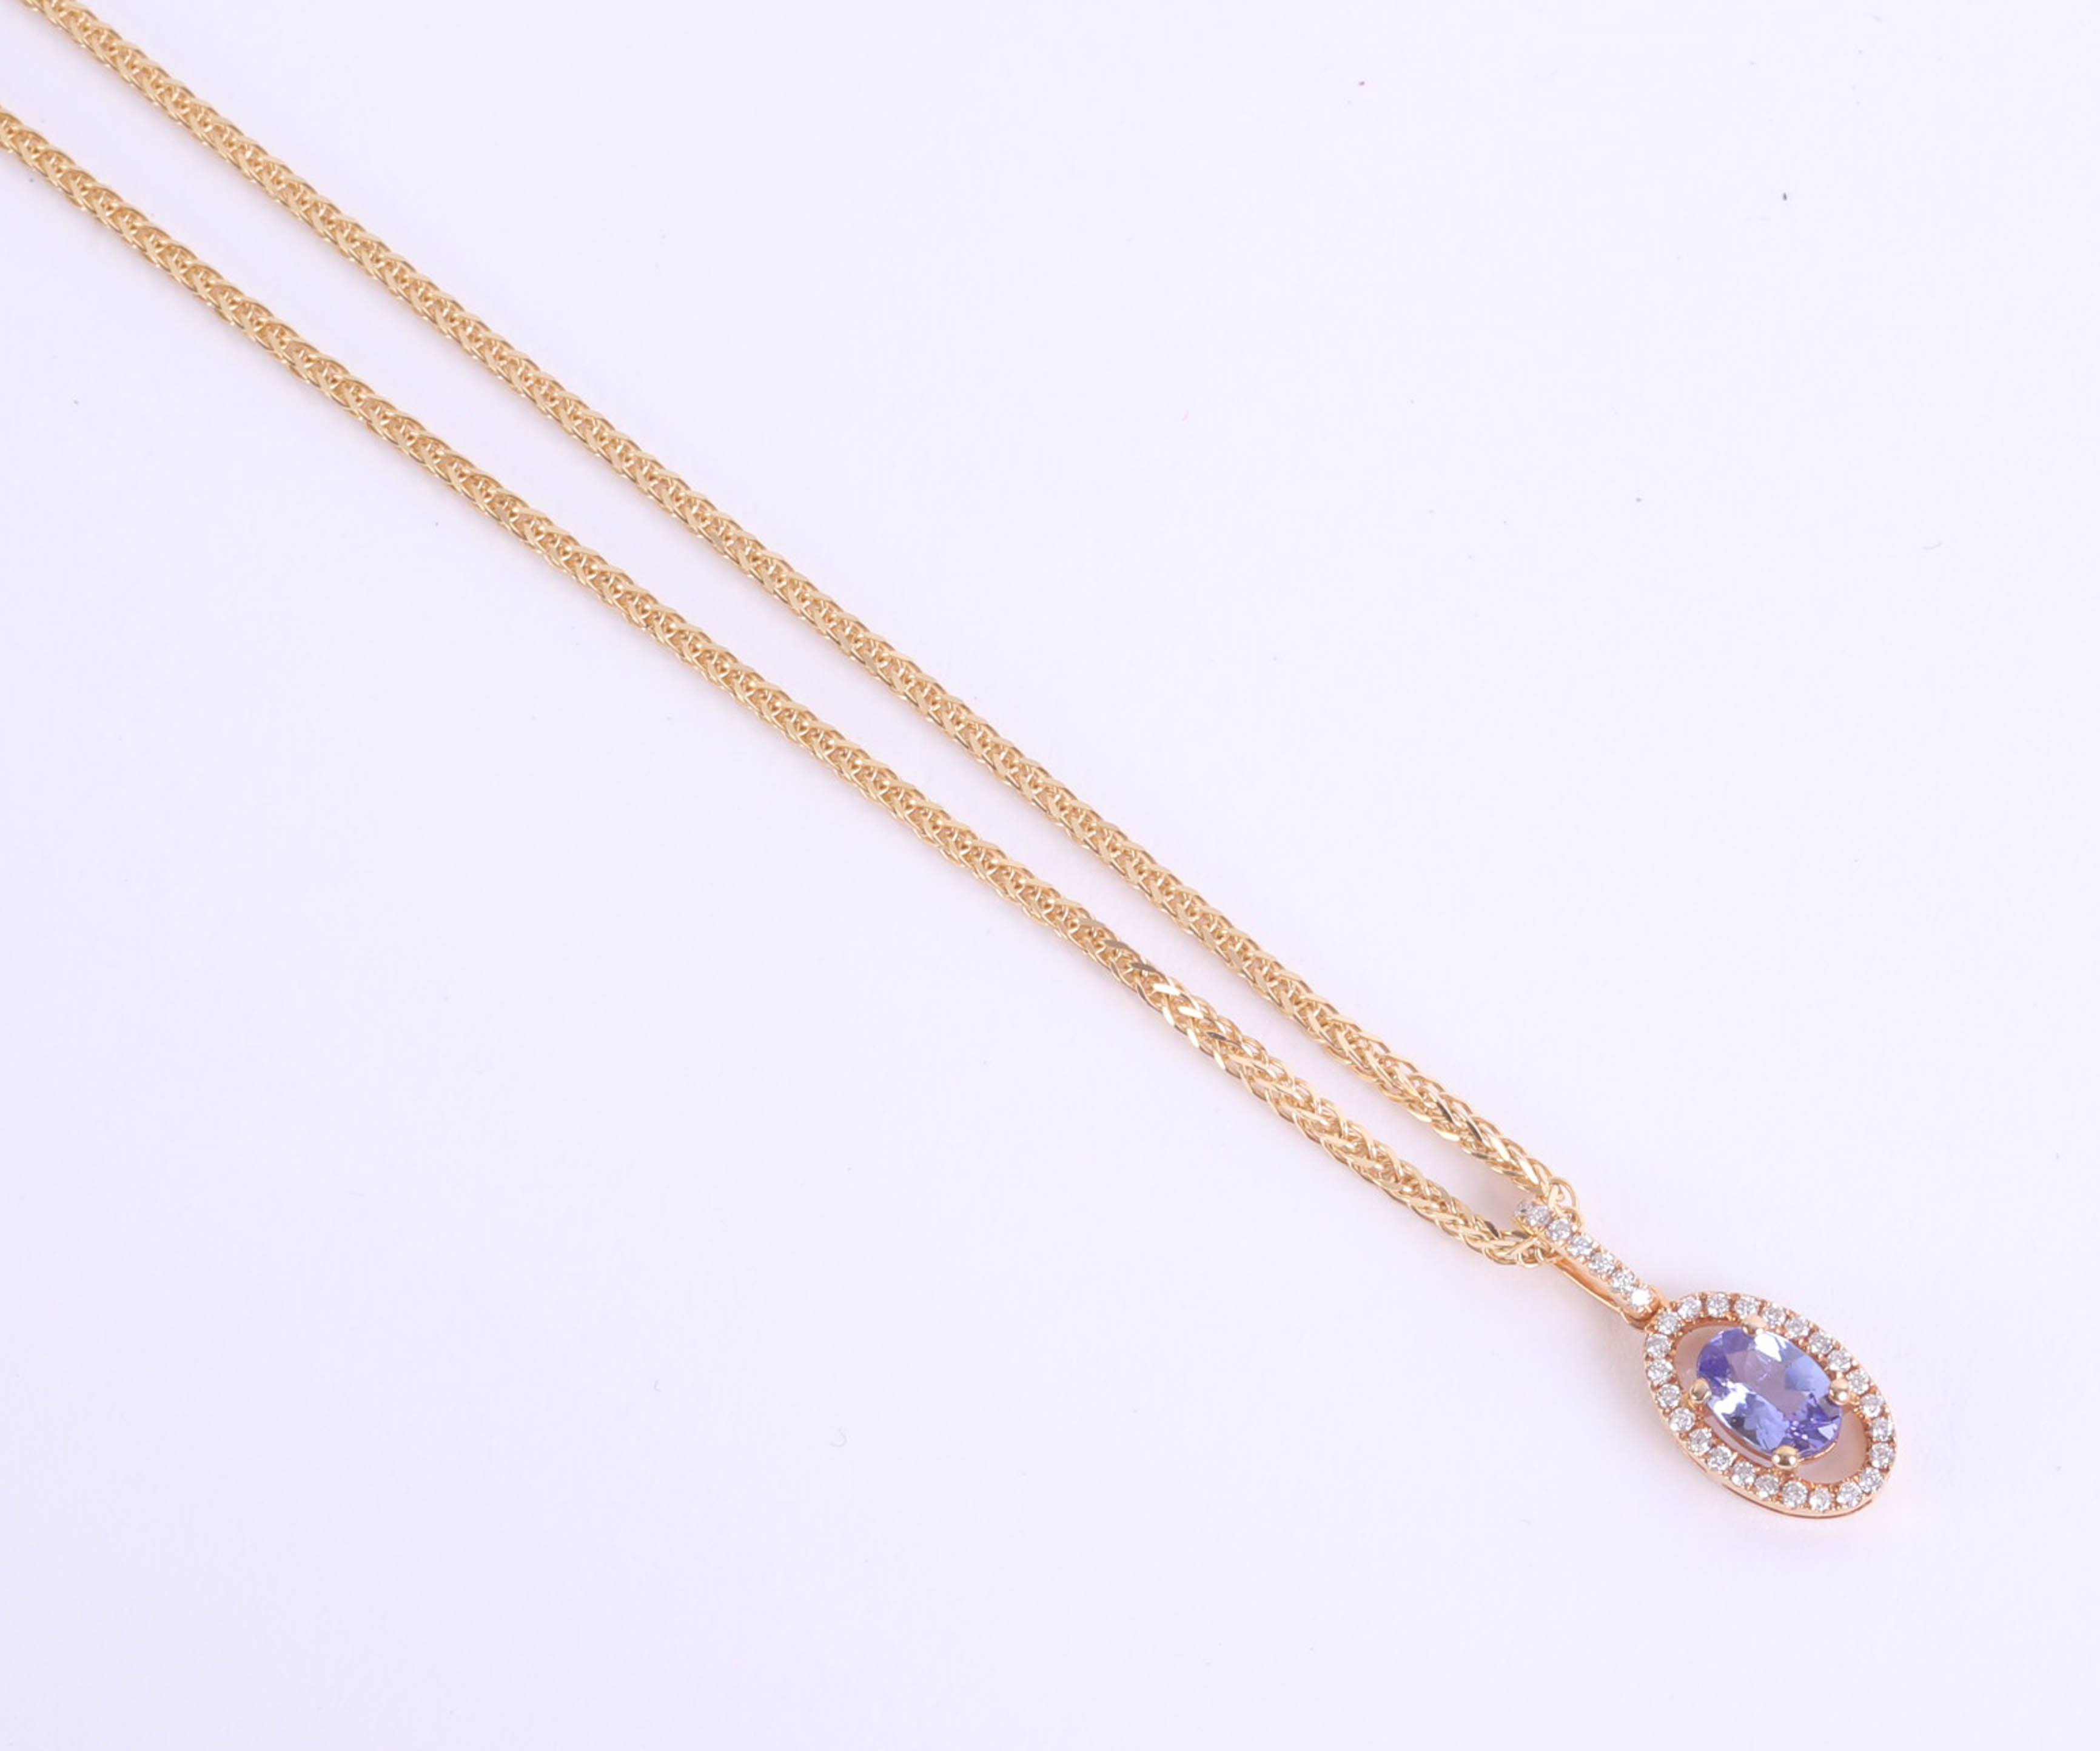 Lot 040 - An 18ct tanzanite and diamond cluster pendant set in yellow gold on fine 18ct chain, total weight